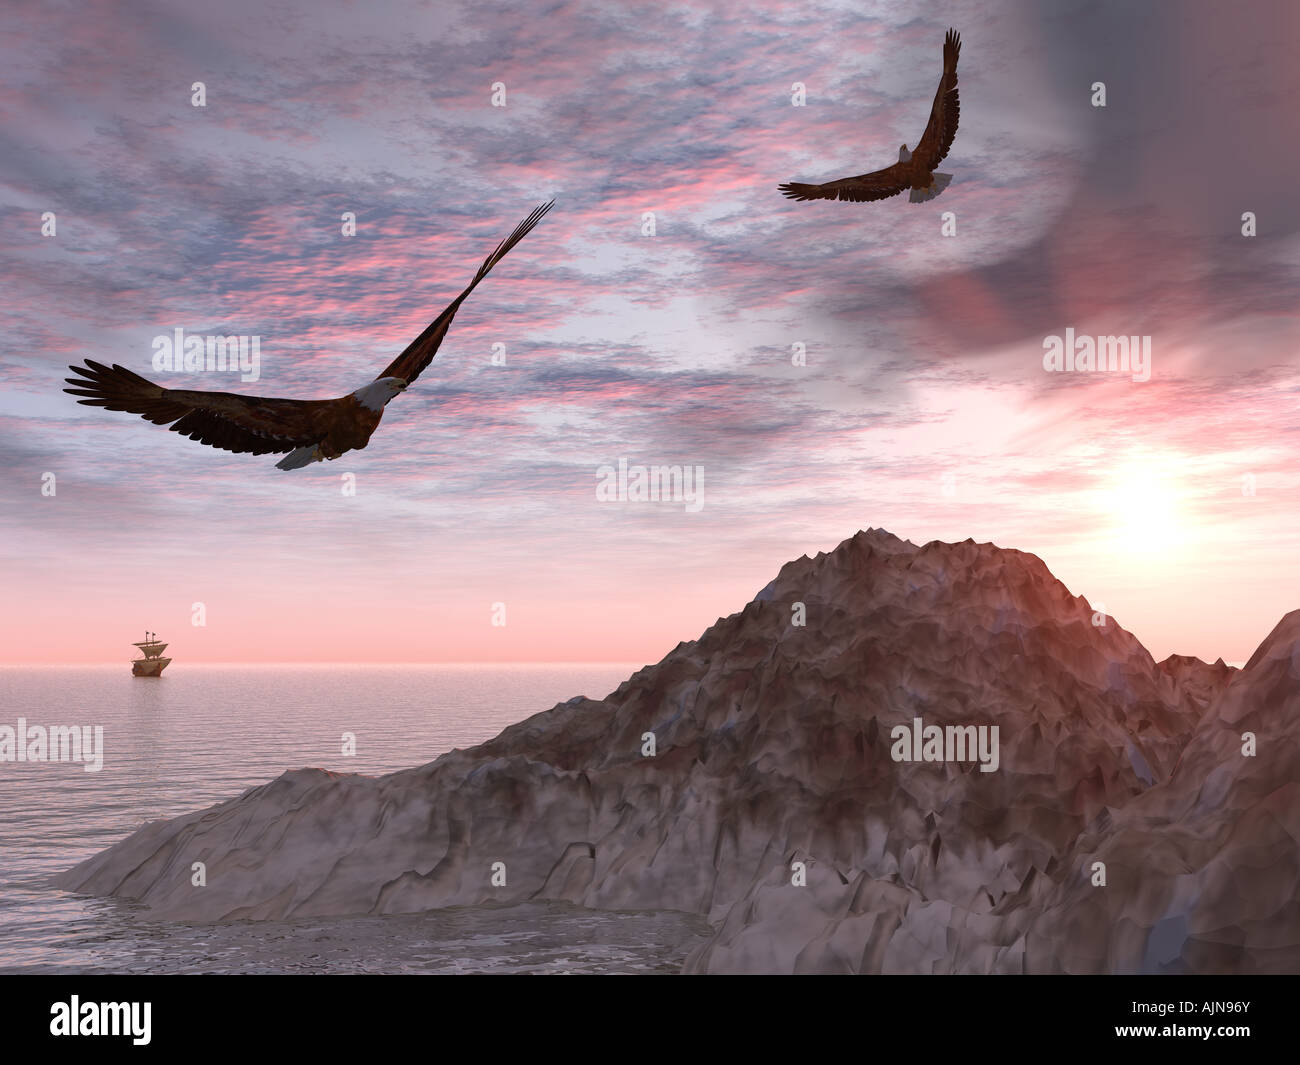 Two eagles on a background of rocks and the seas and a sailing vessel in a distance very dramatic sky - Stock Image